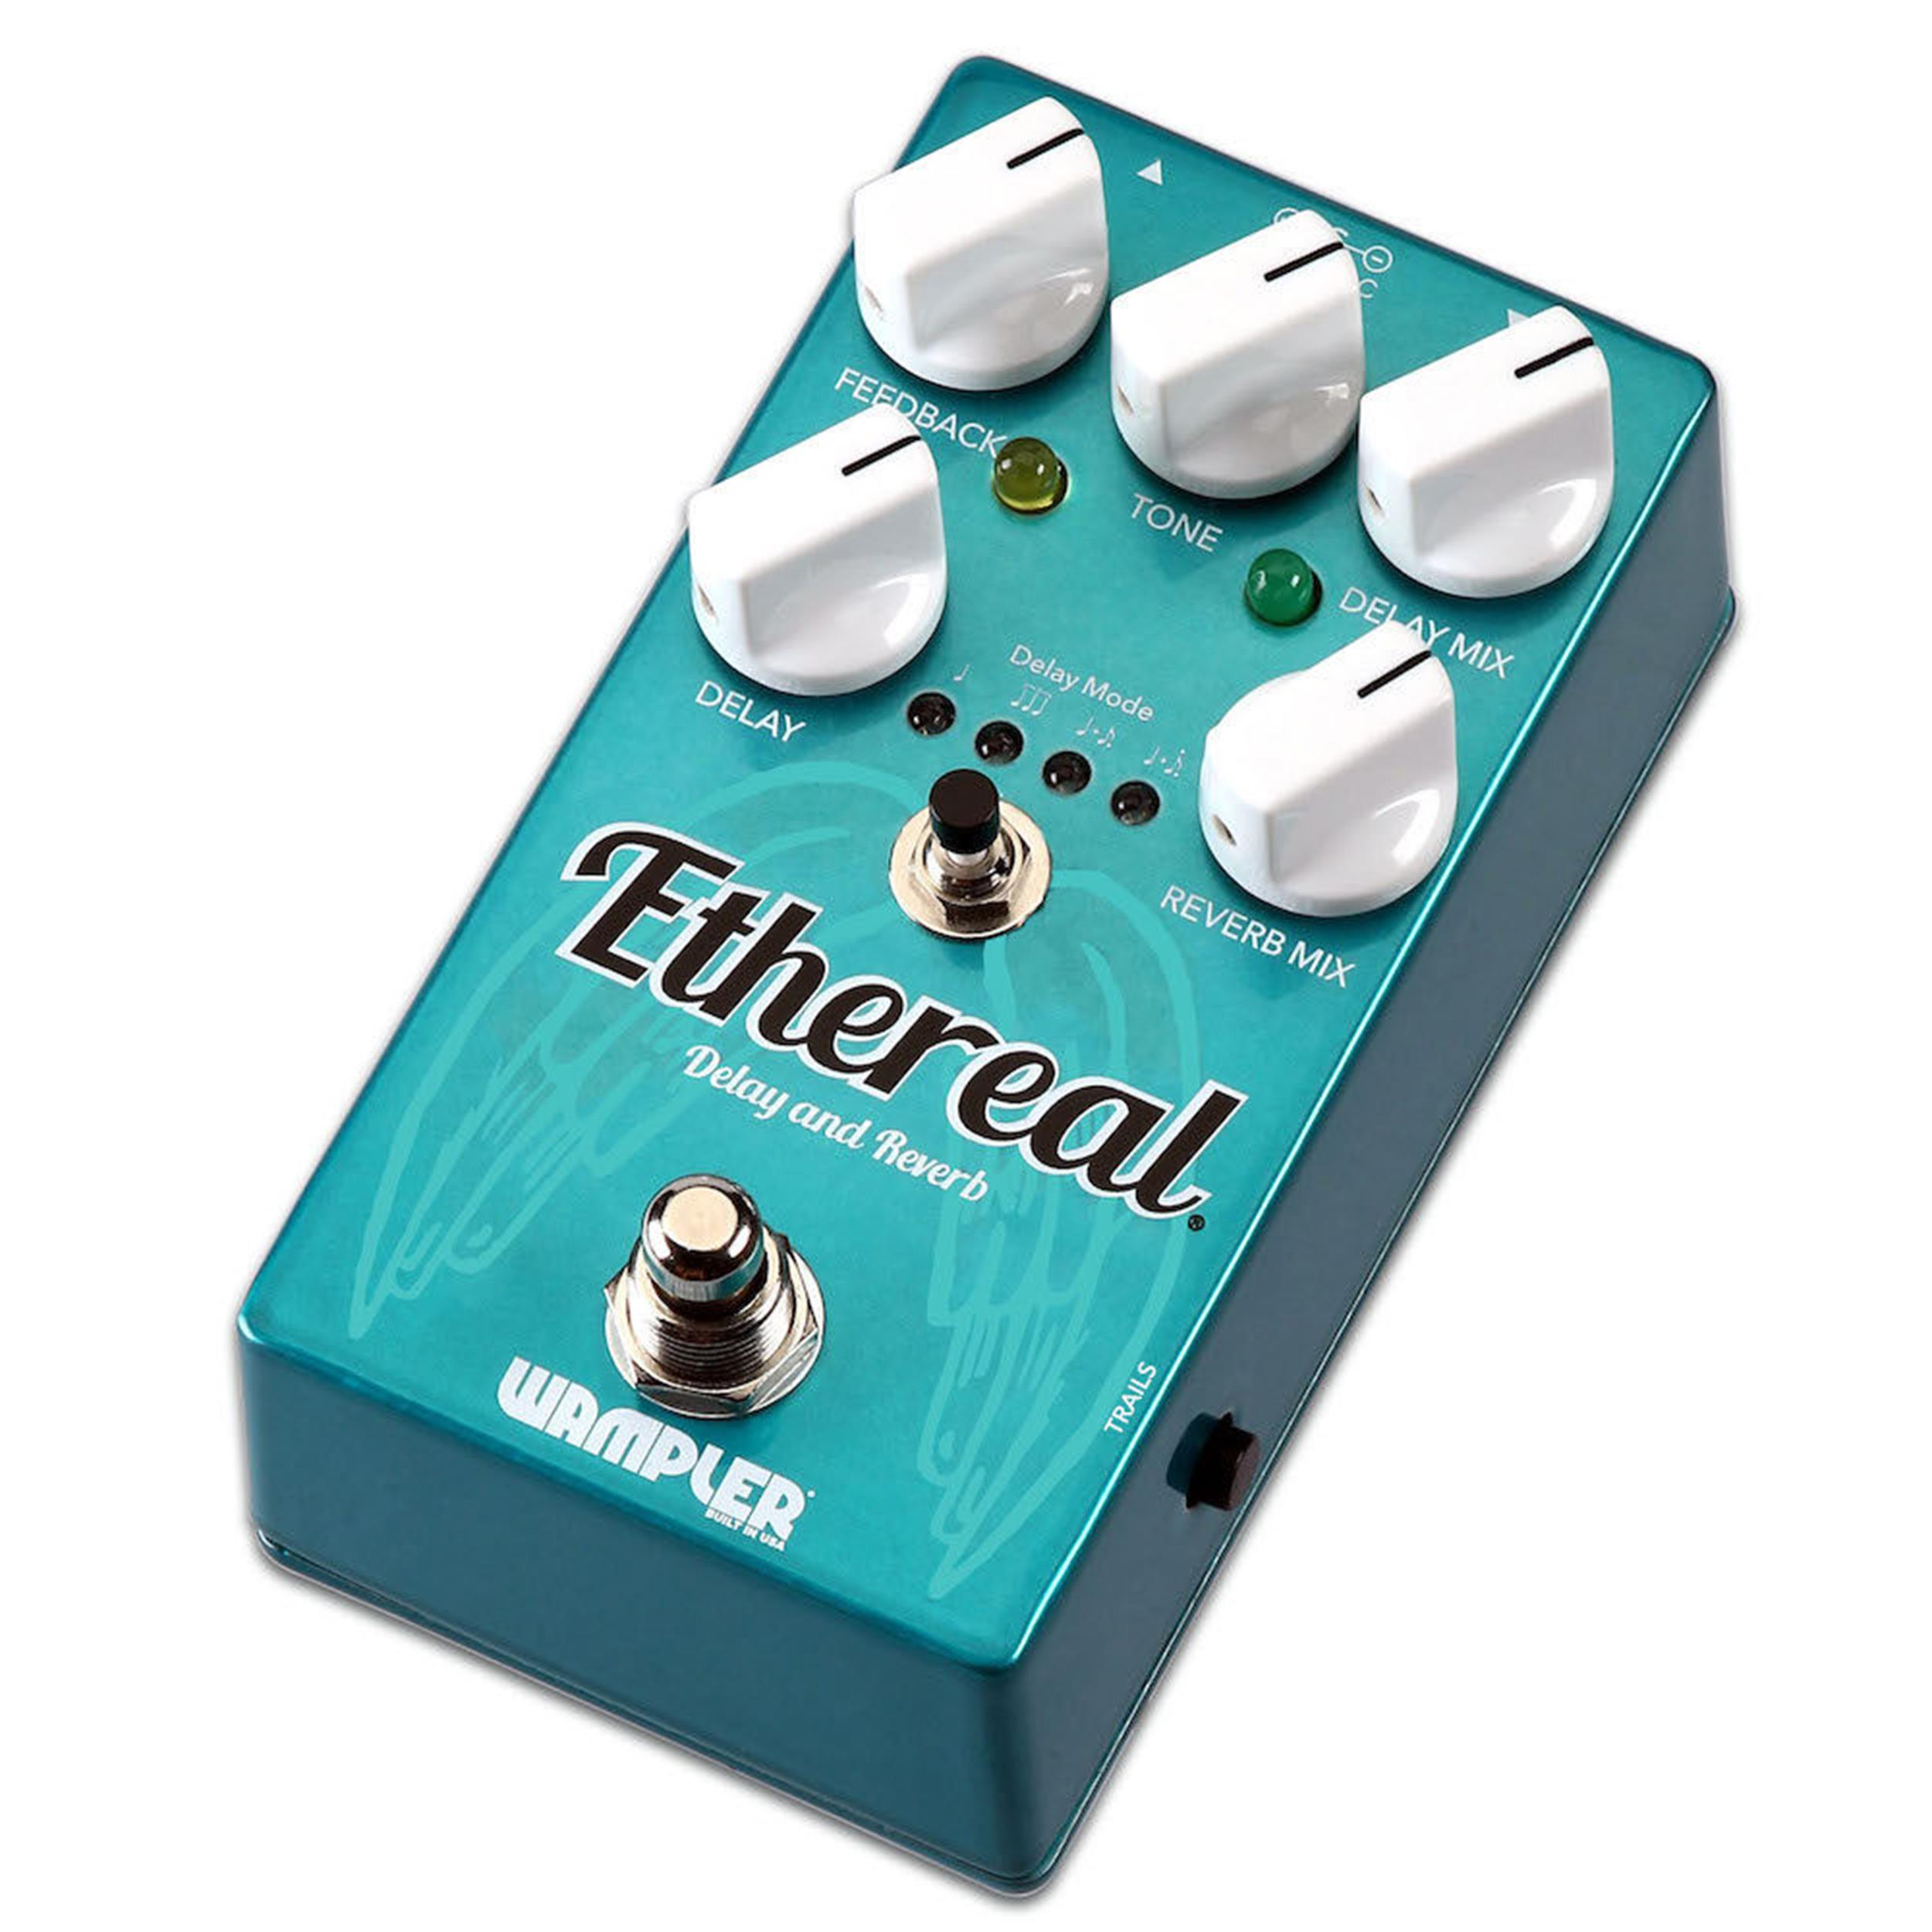 WAMPLER ETHEREAL DELAY REVERB